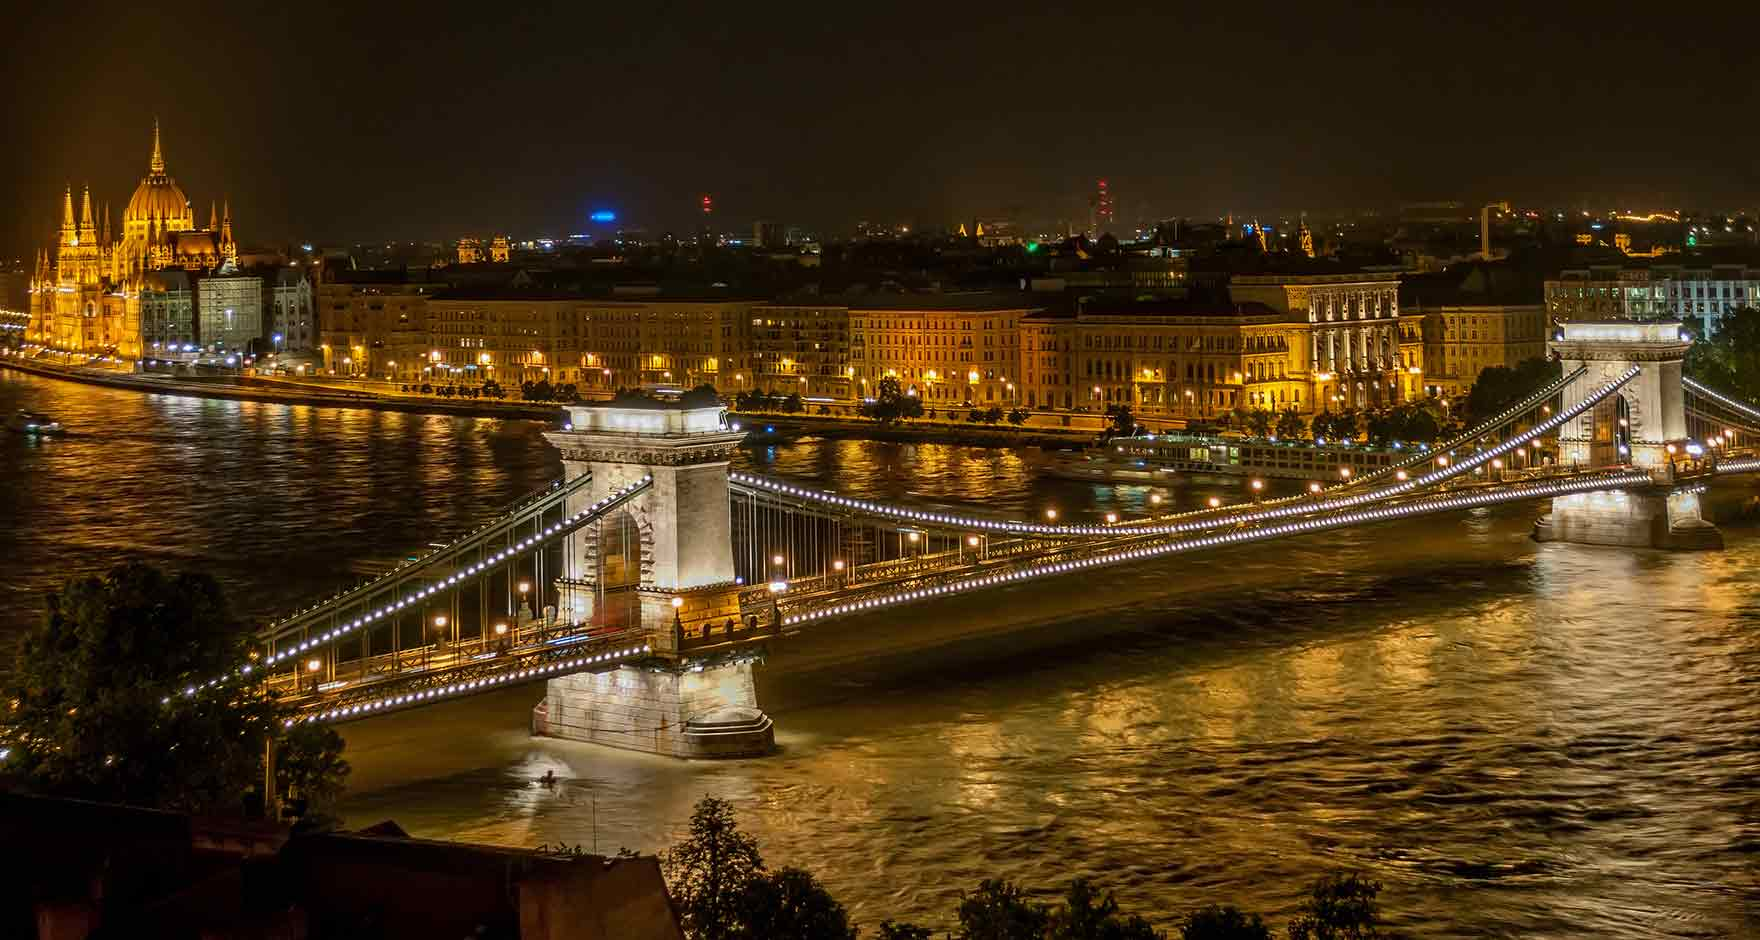 Széchenyi Chain Bridge, Budapest at night, viewed from Budapest Castle